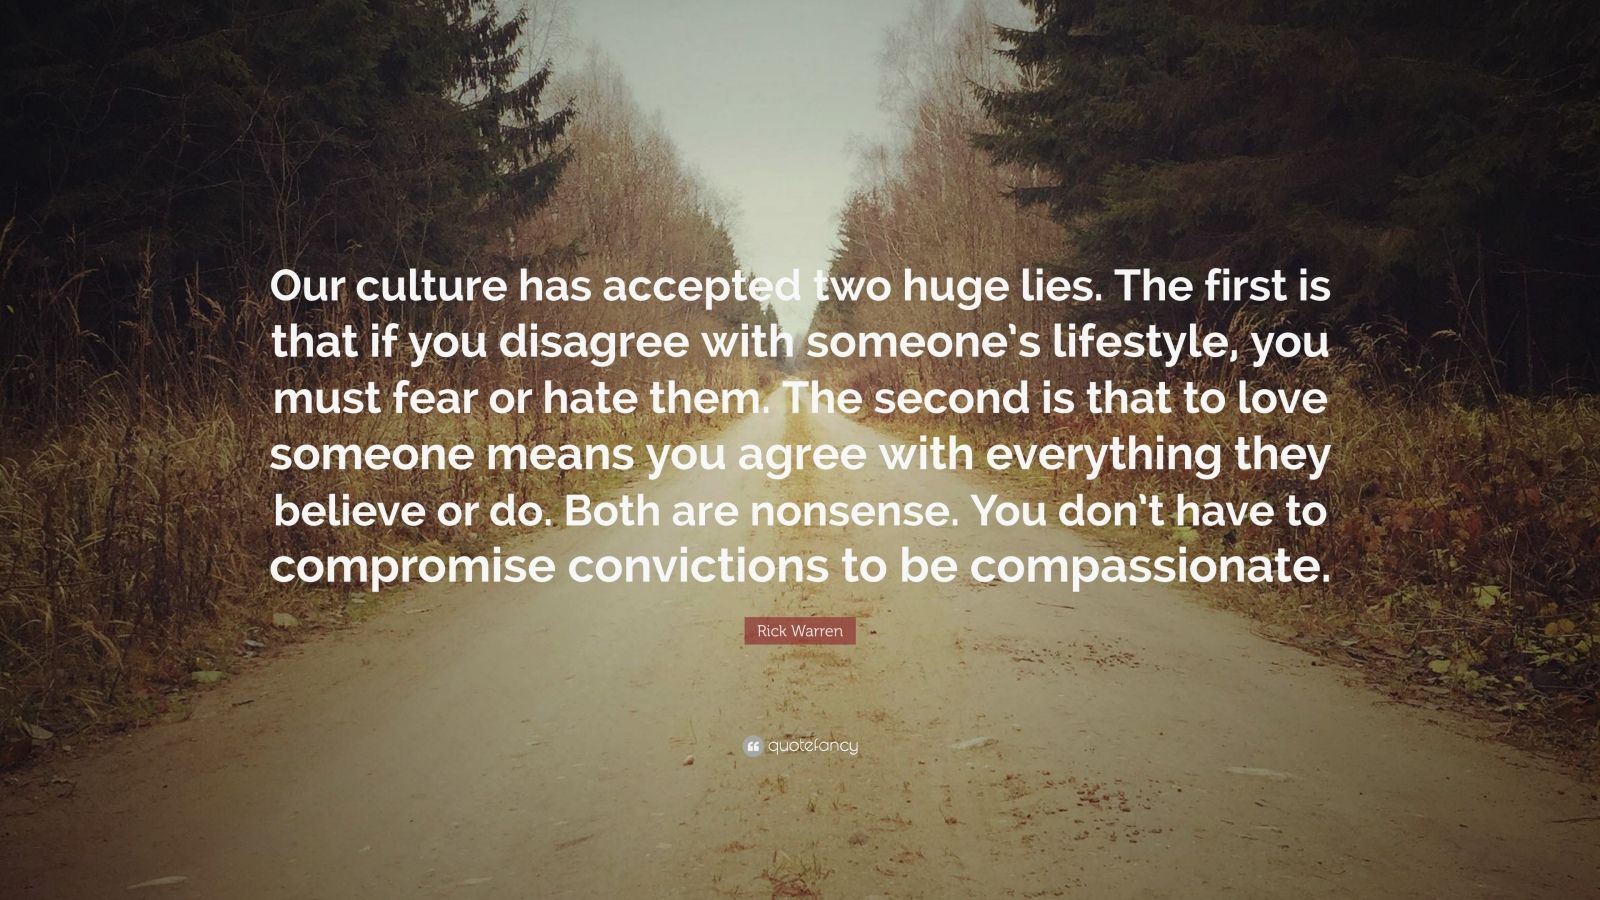 "Rick Warren Quote: ""Our culture has accepted two huge lies. The first is that if you disagree with someone's lifestyle, you must fear or hate them. The second is that to love someone means you agree with everything they believe or do. Both are nonsense. You don't have to compromise convictions to be compassionate."""